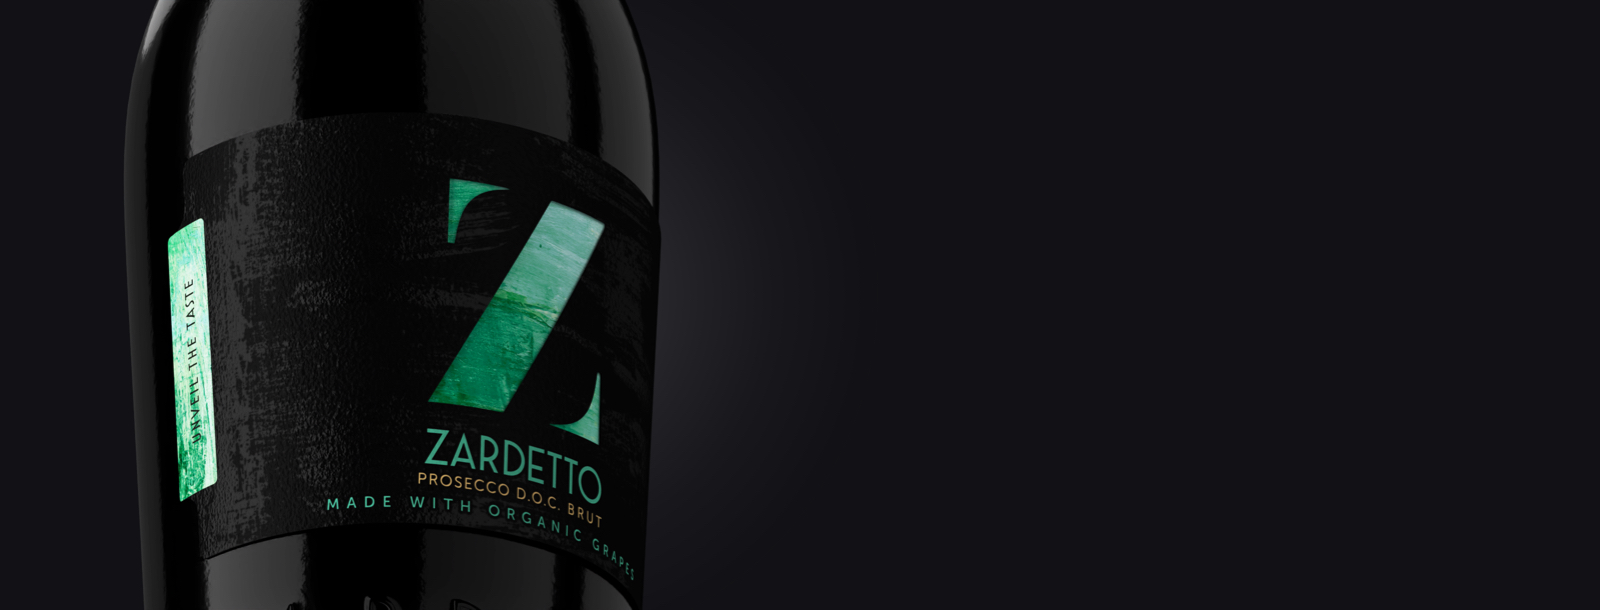 Closed Label on the bottle of Zardetto's Prosecco DOC brut Organic Grapes